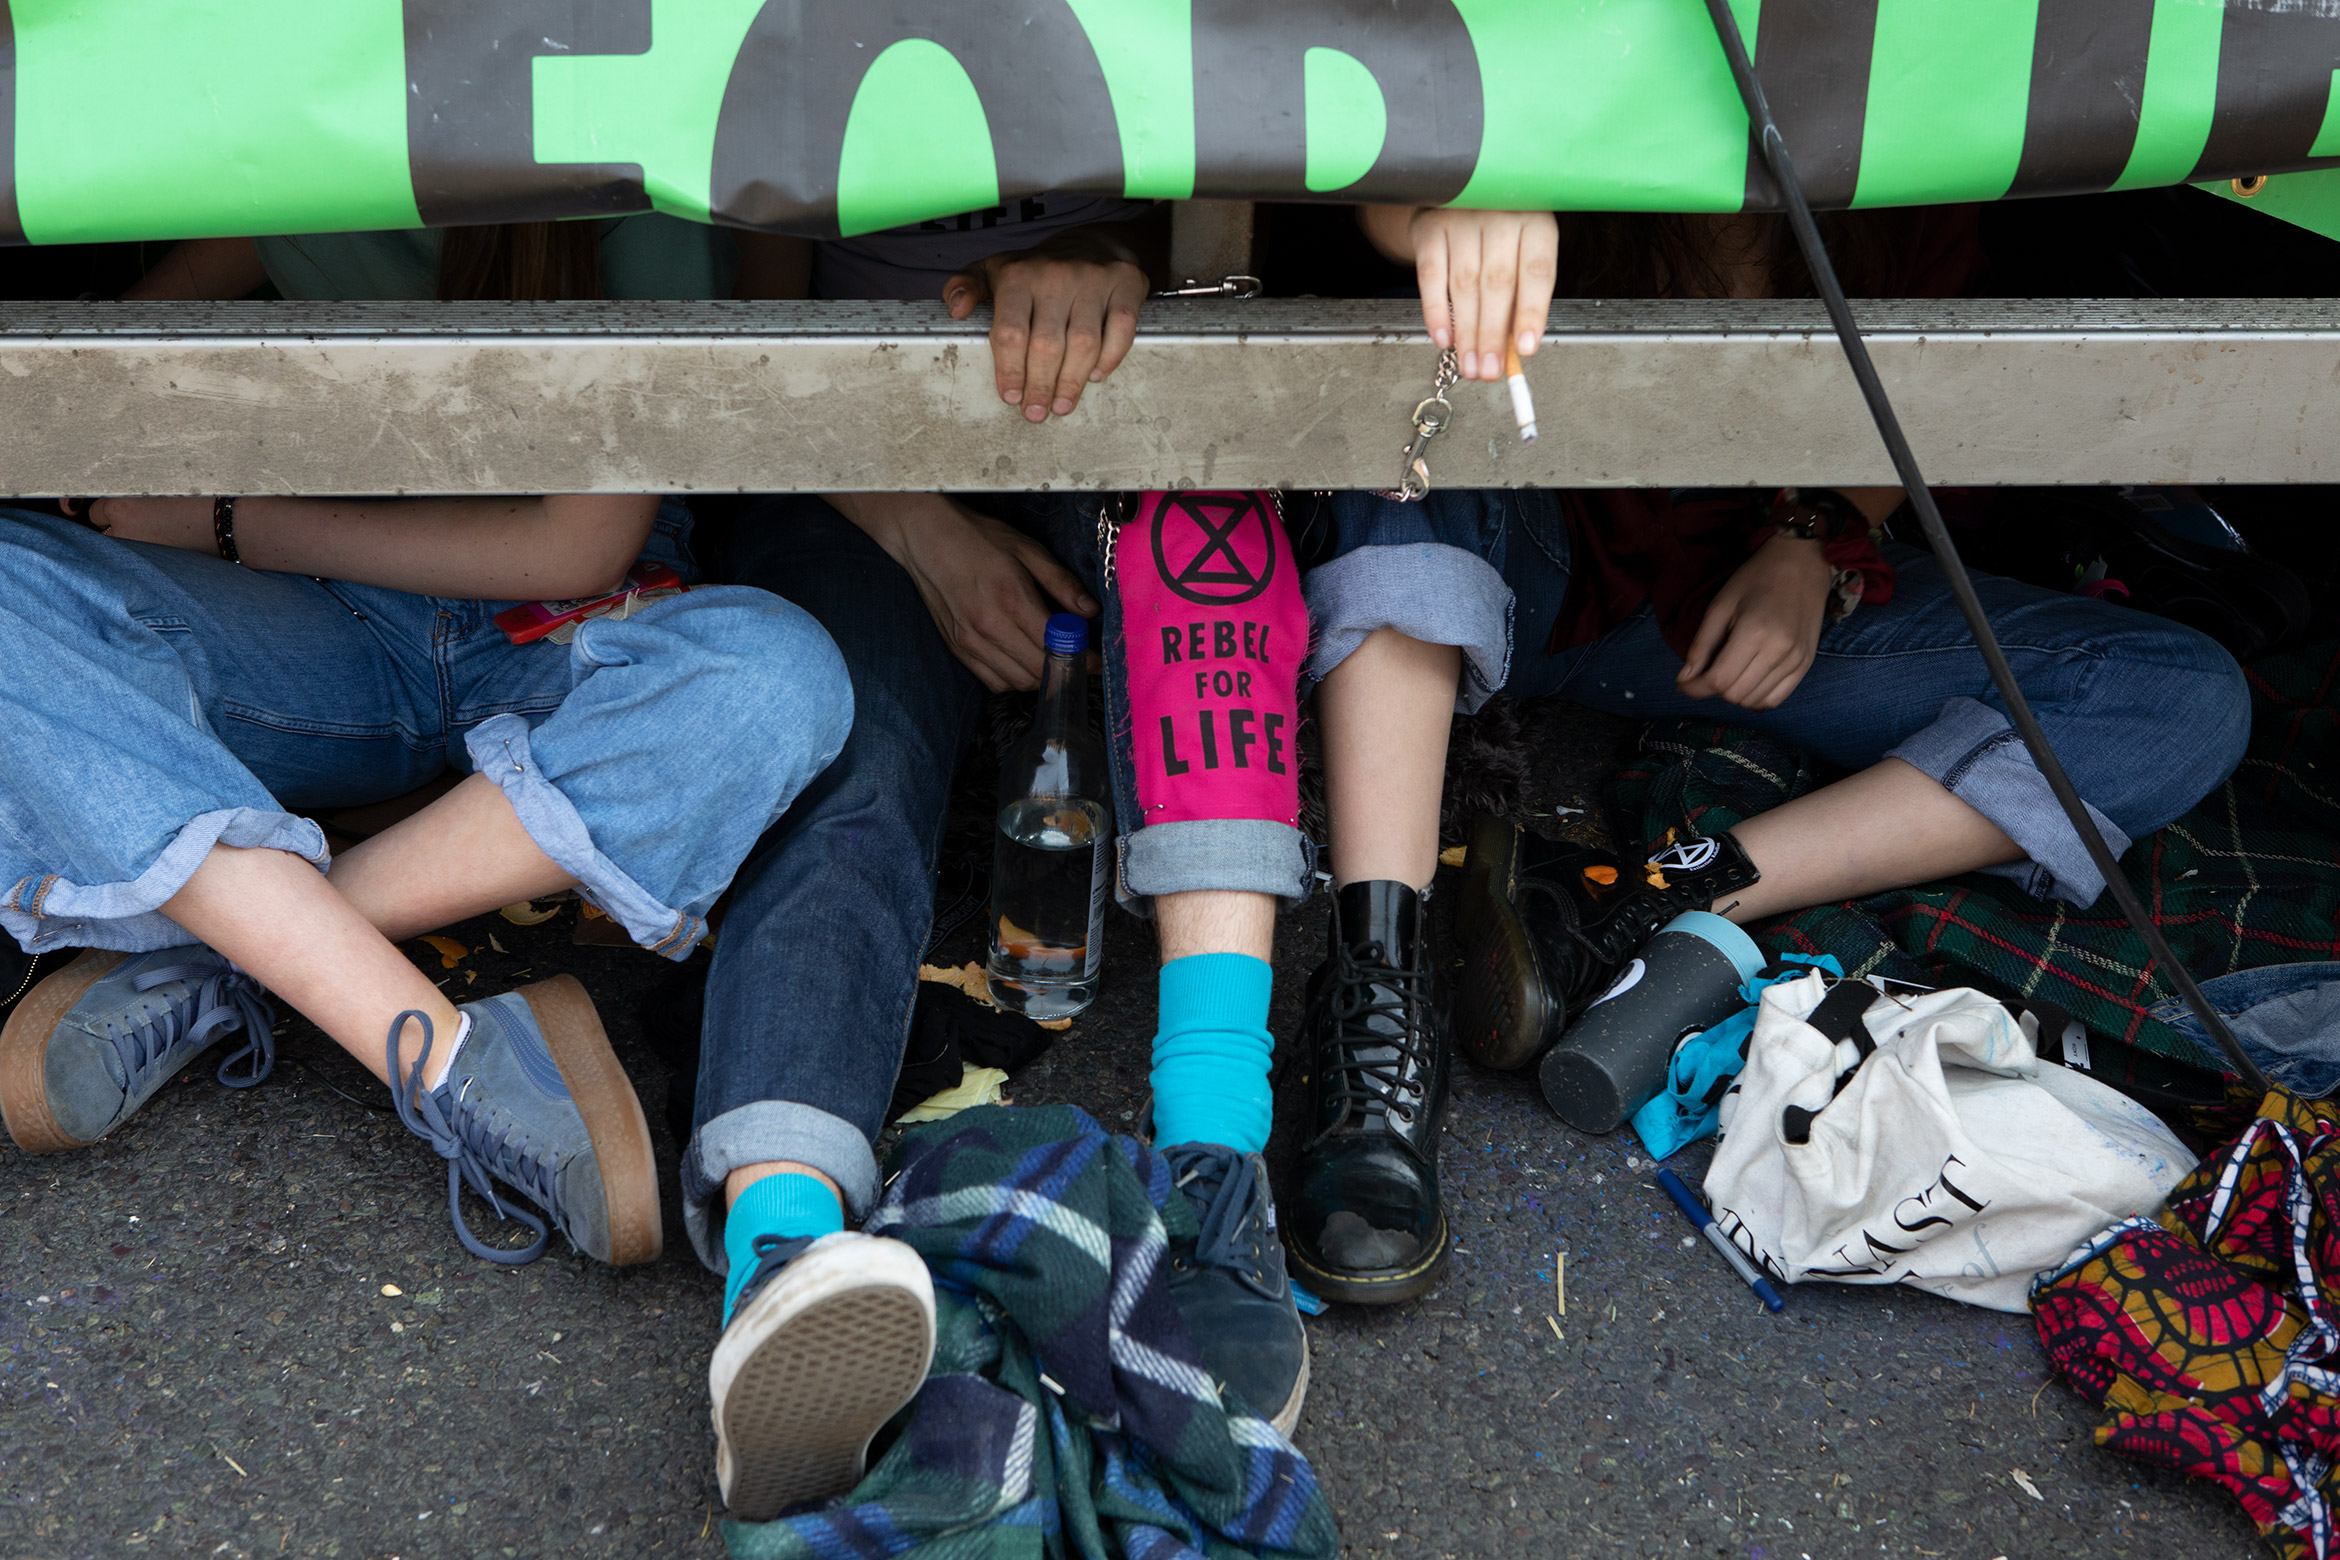 rebel-for-life-extinction-rebellion-kids